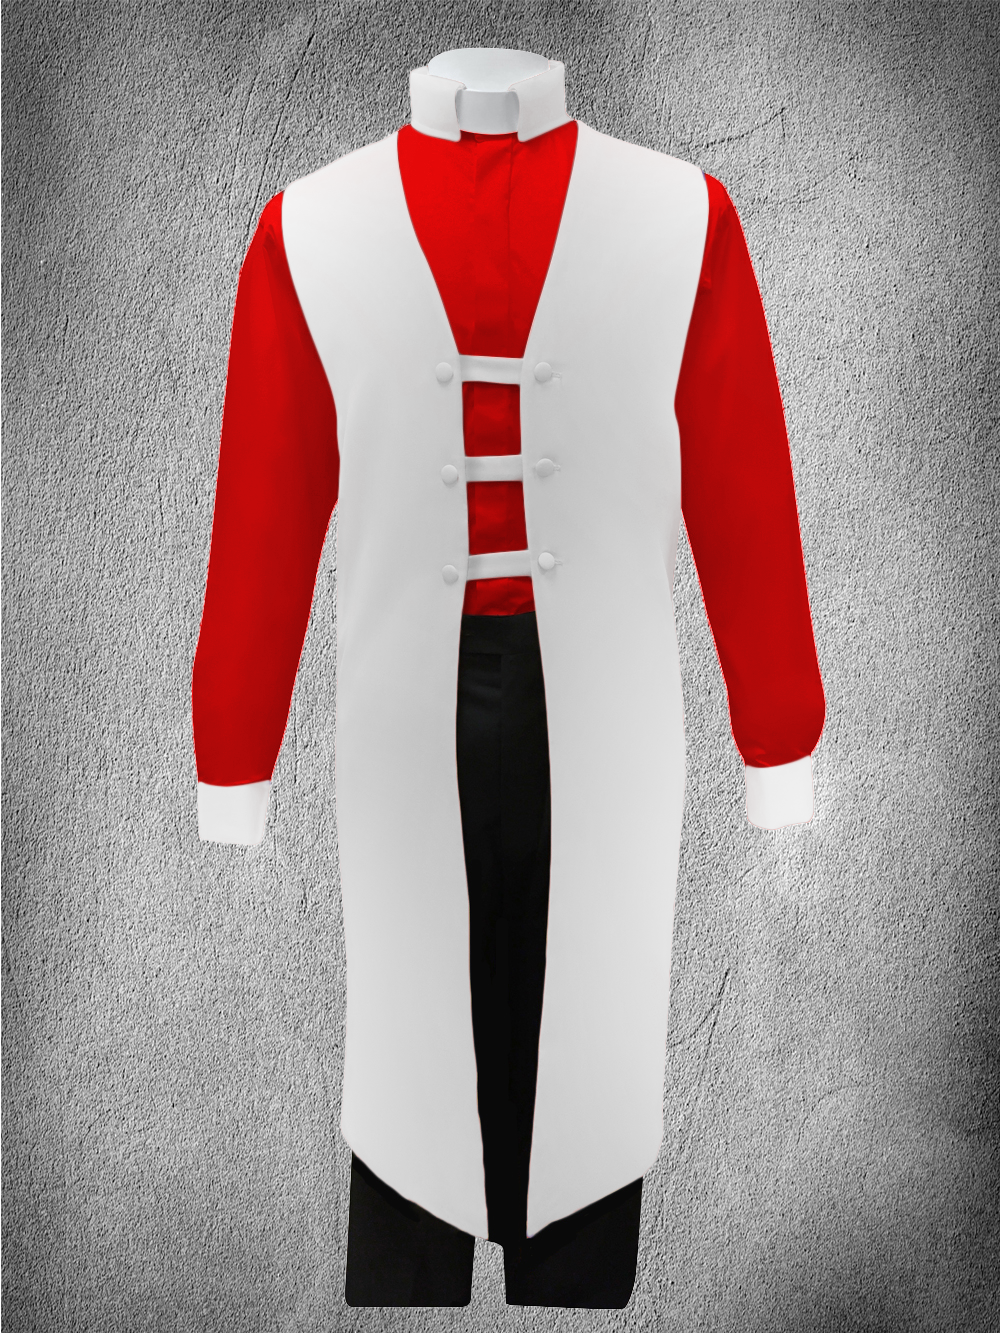 Contrast Ministerial Vesture Set White/Red-White